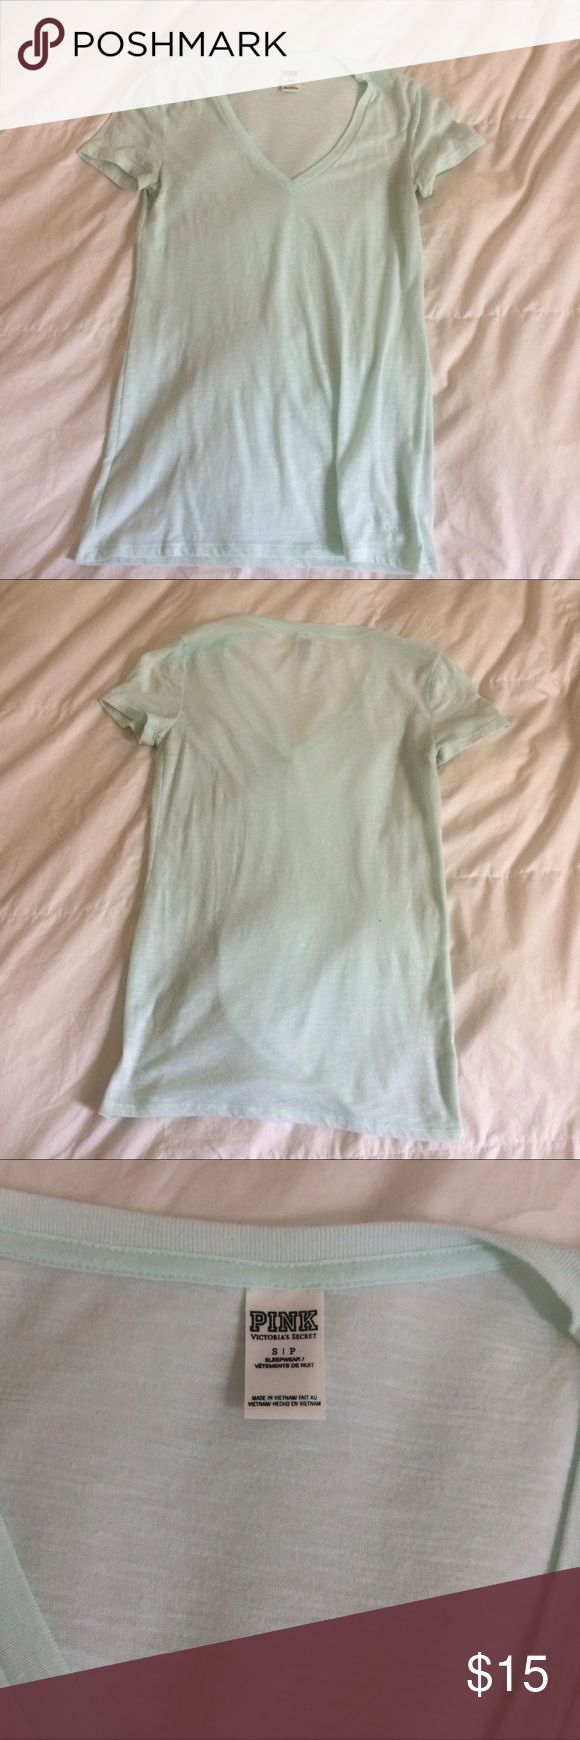 VS Pink cotton v neck mint shirt small So cute and comfy! Victoria's Secret PINK cotton v neck, size small in the color mint. A little sheer so a nude or white bra looks best with it! So light and easy for summer! PINK Tops Tees - Short Sleeve